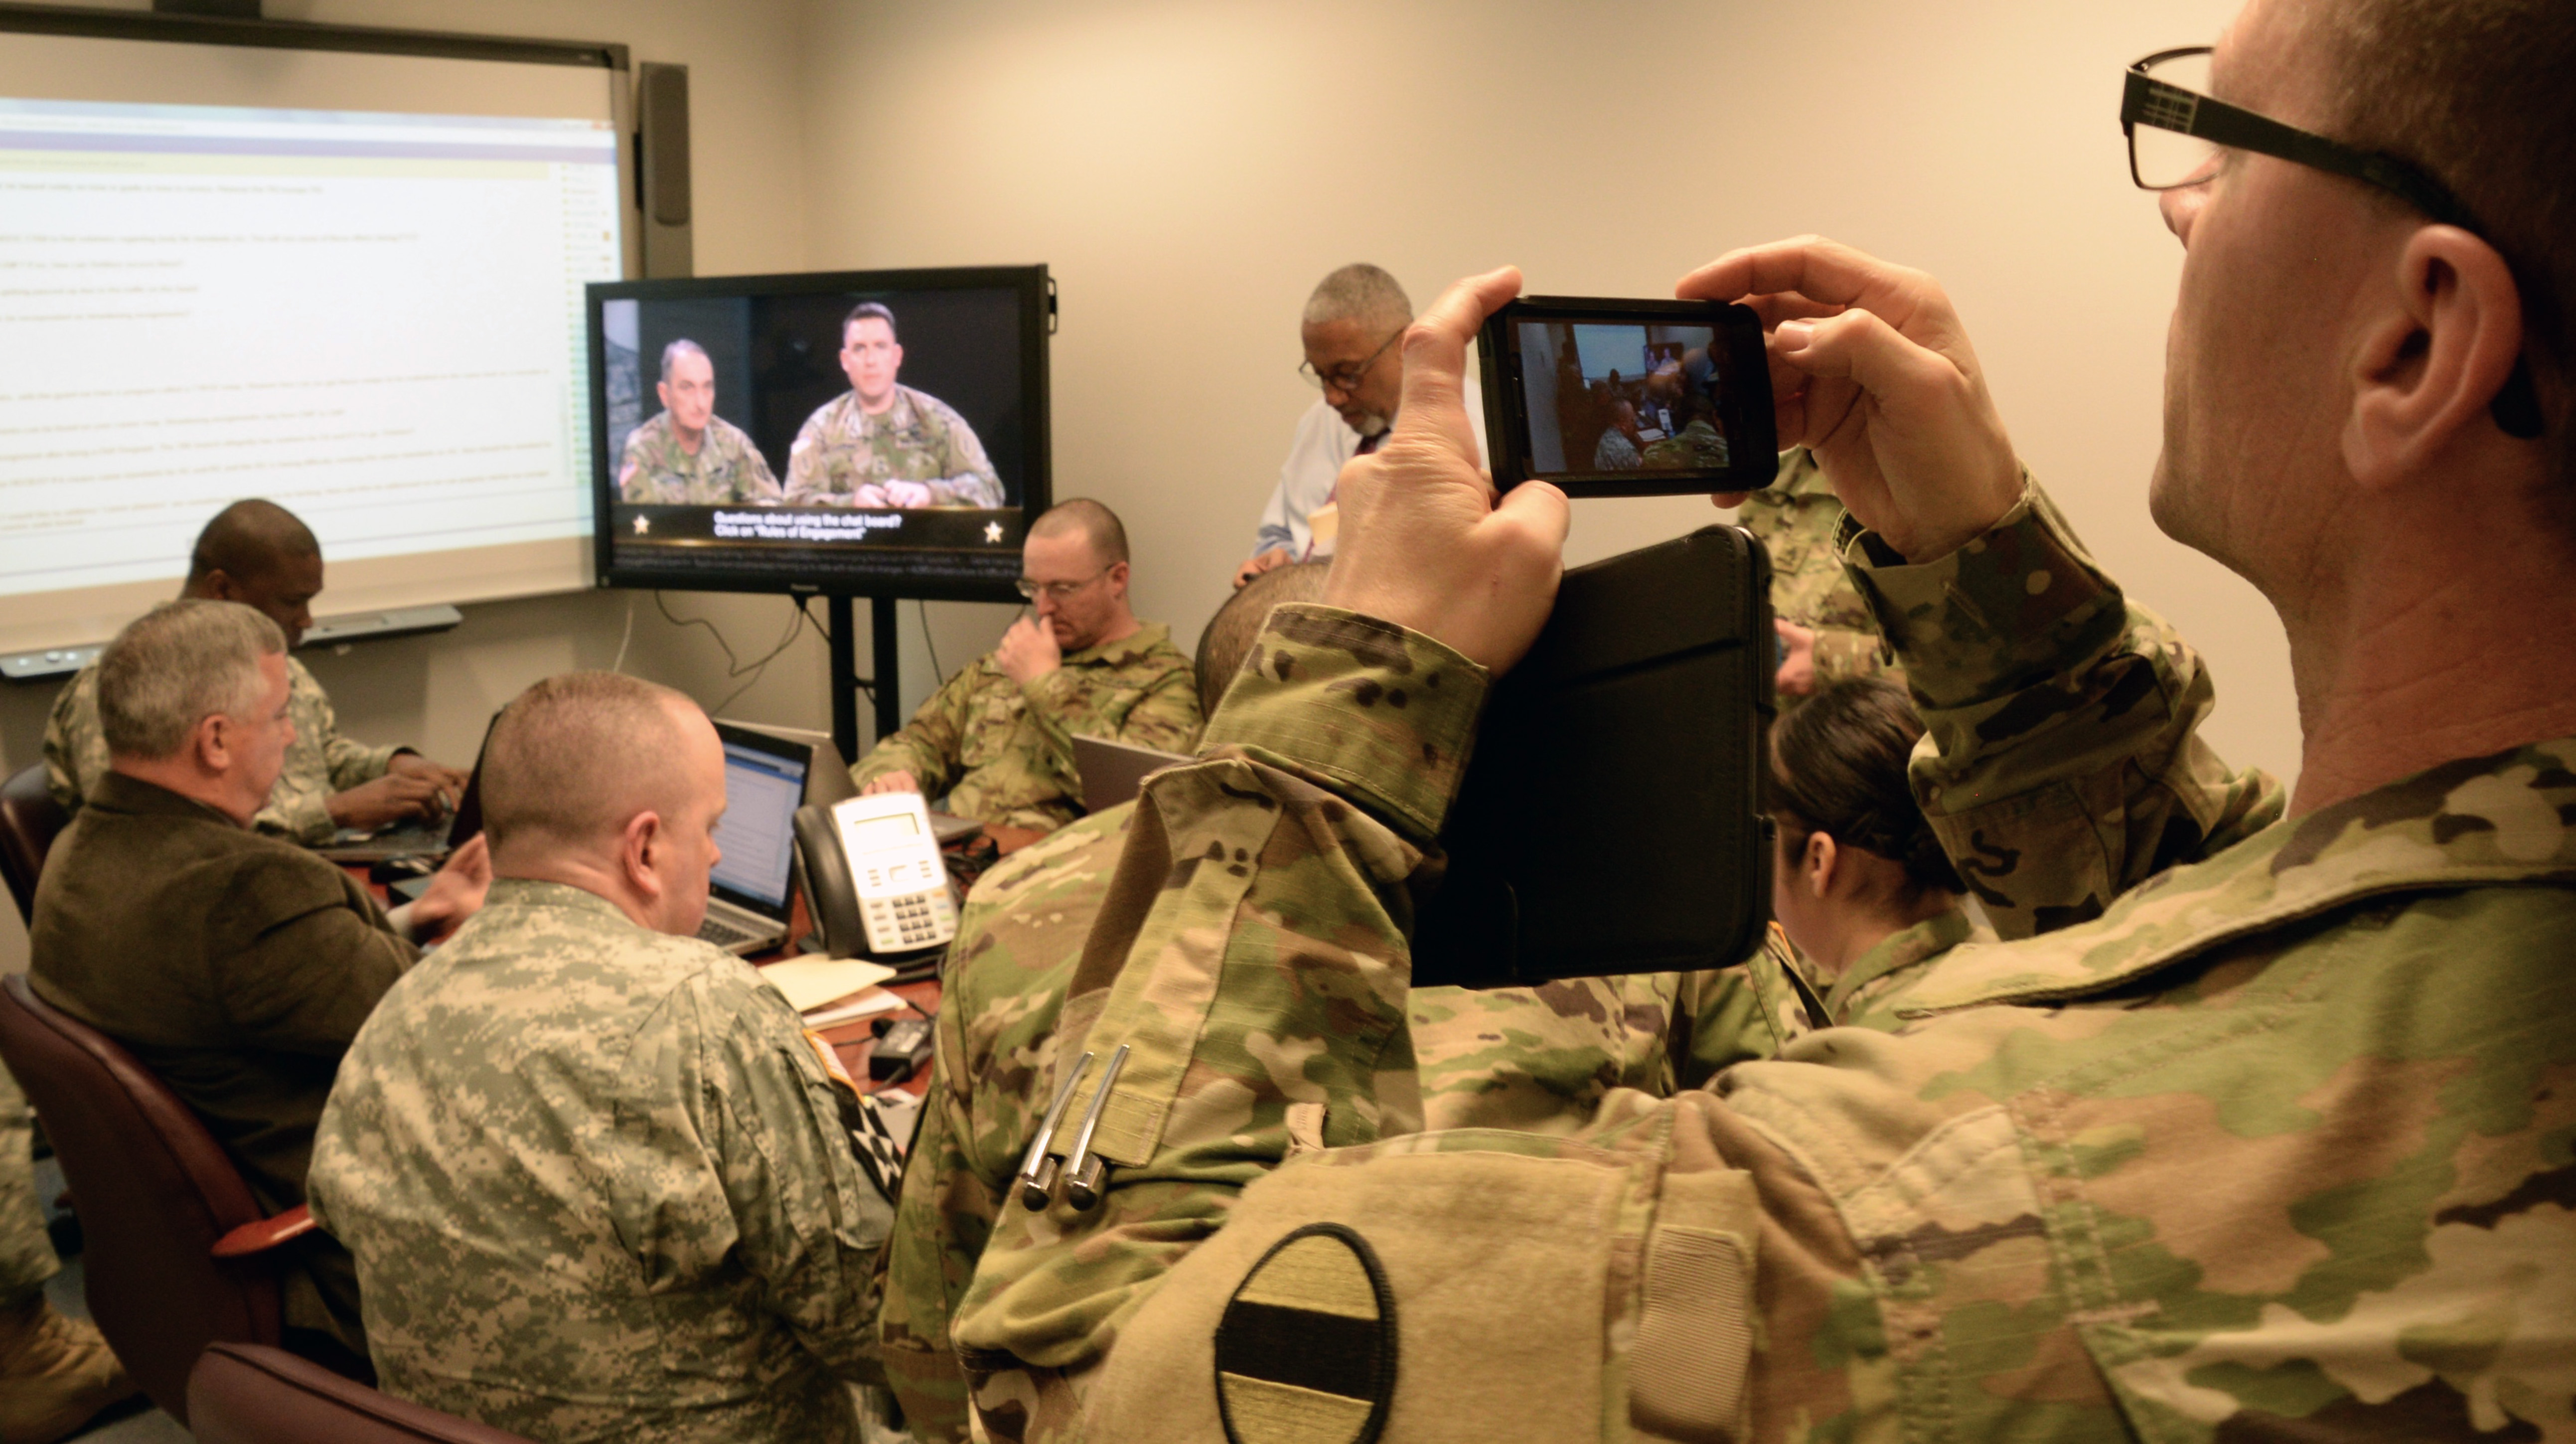 With the chat room questions displayed at the front of the room, a group of NCOs and experts answer questions during the town hall. (Photo by Jonathan (Jay) Koester / NCO Journal)